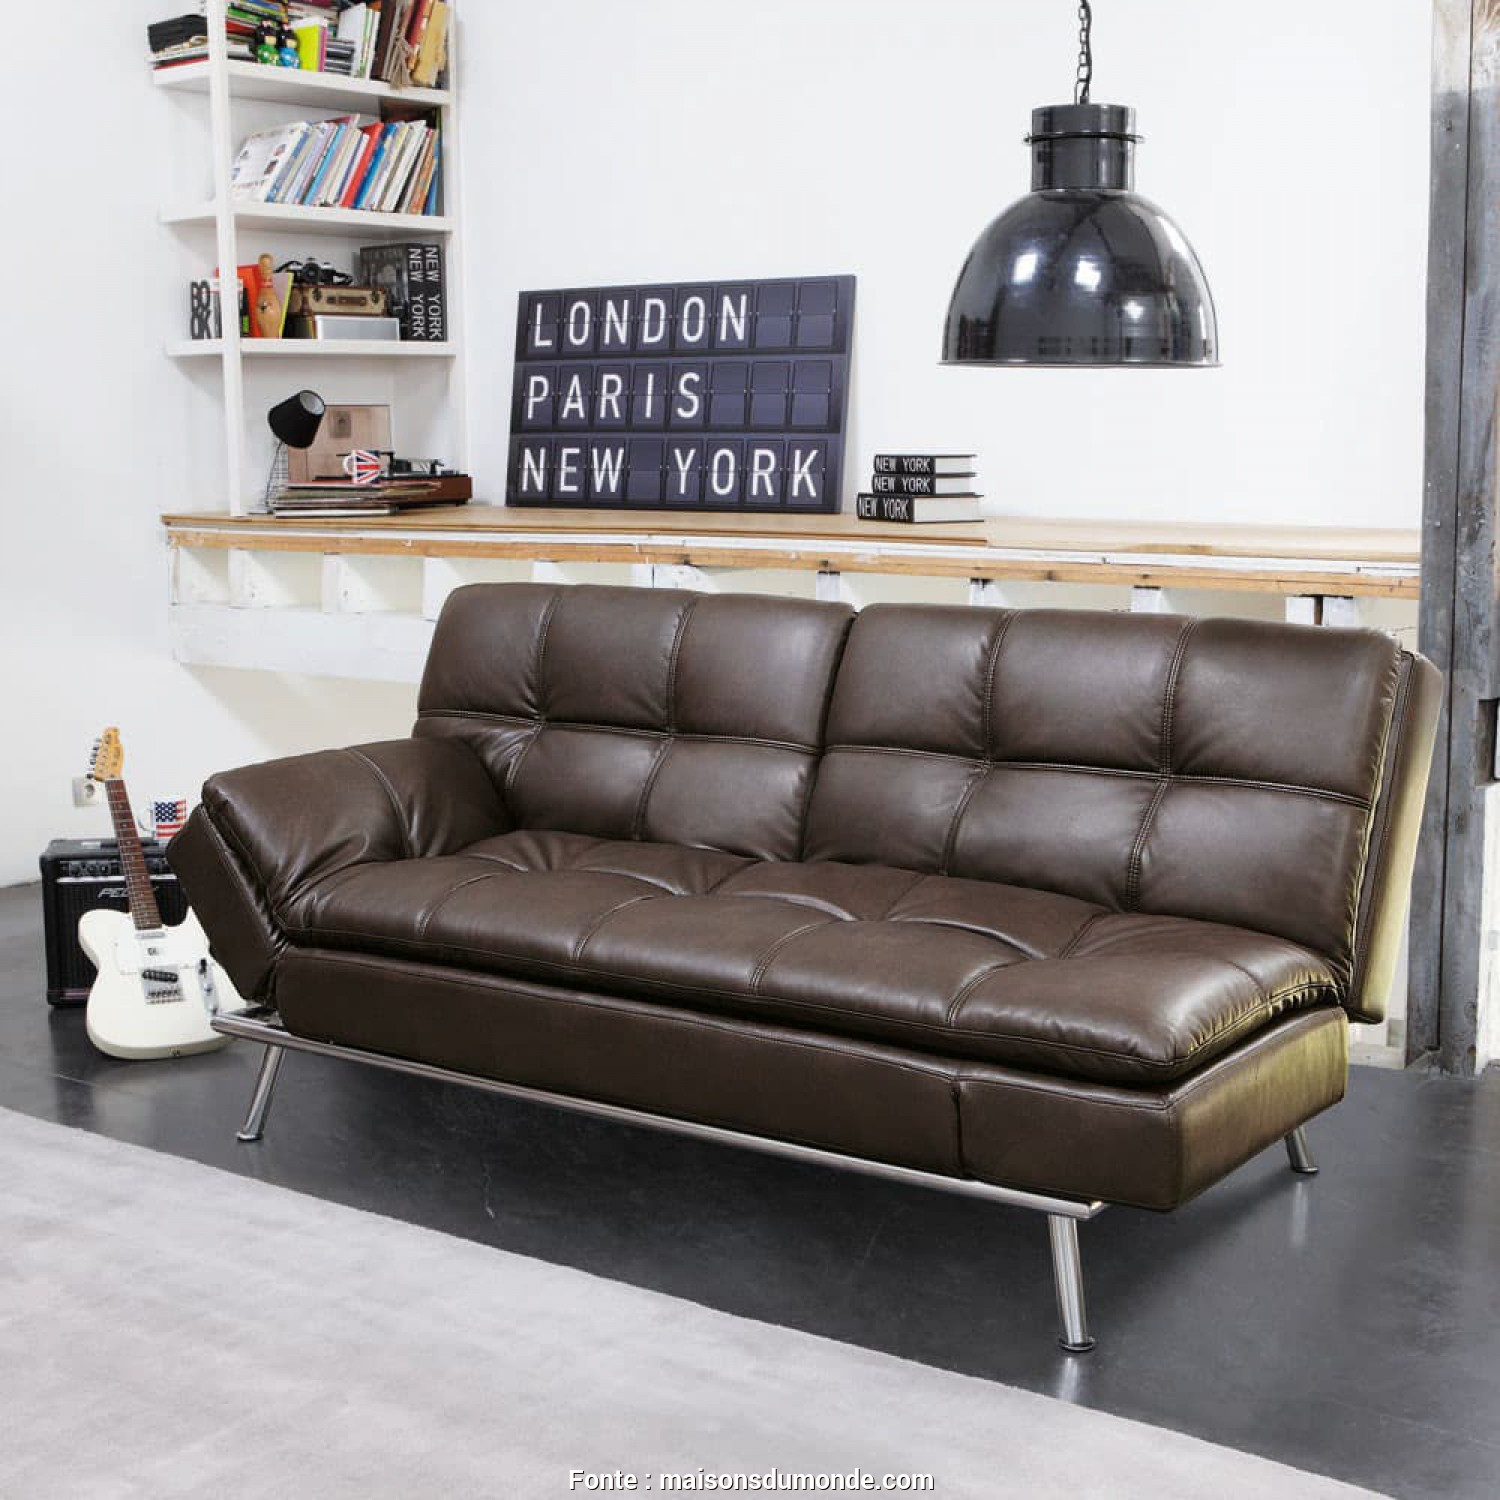 Divano Denver Maison Du Monde, Maestoso Brown 3-Seater Tufted Clic Clac Sofa, Denver